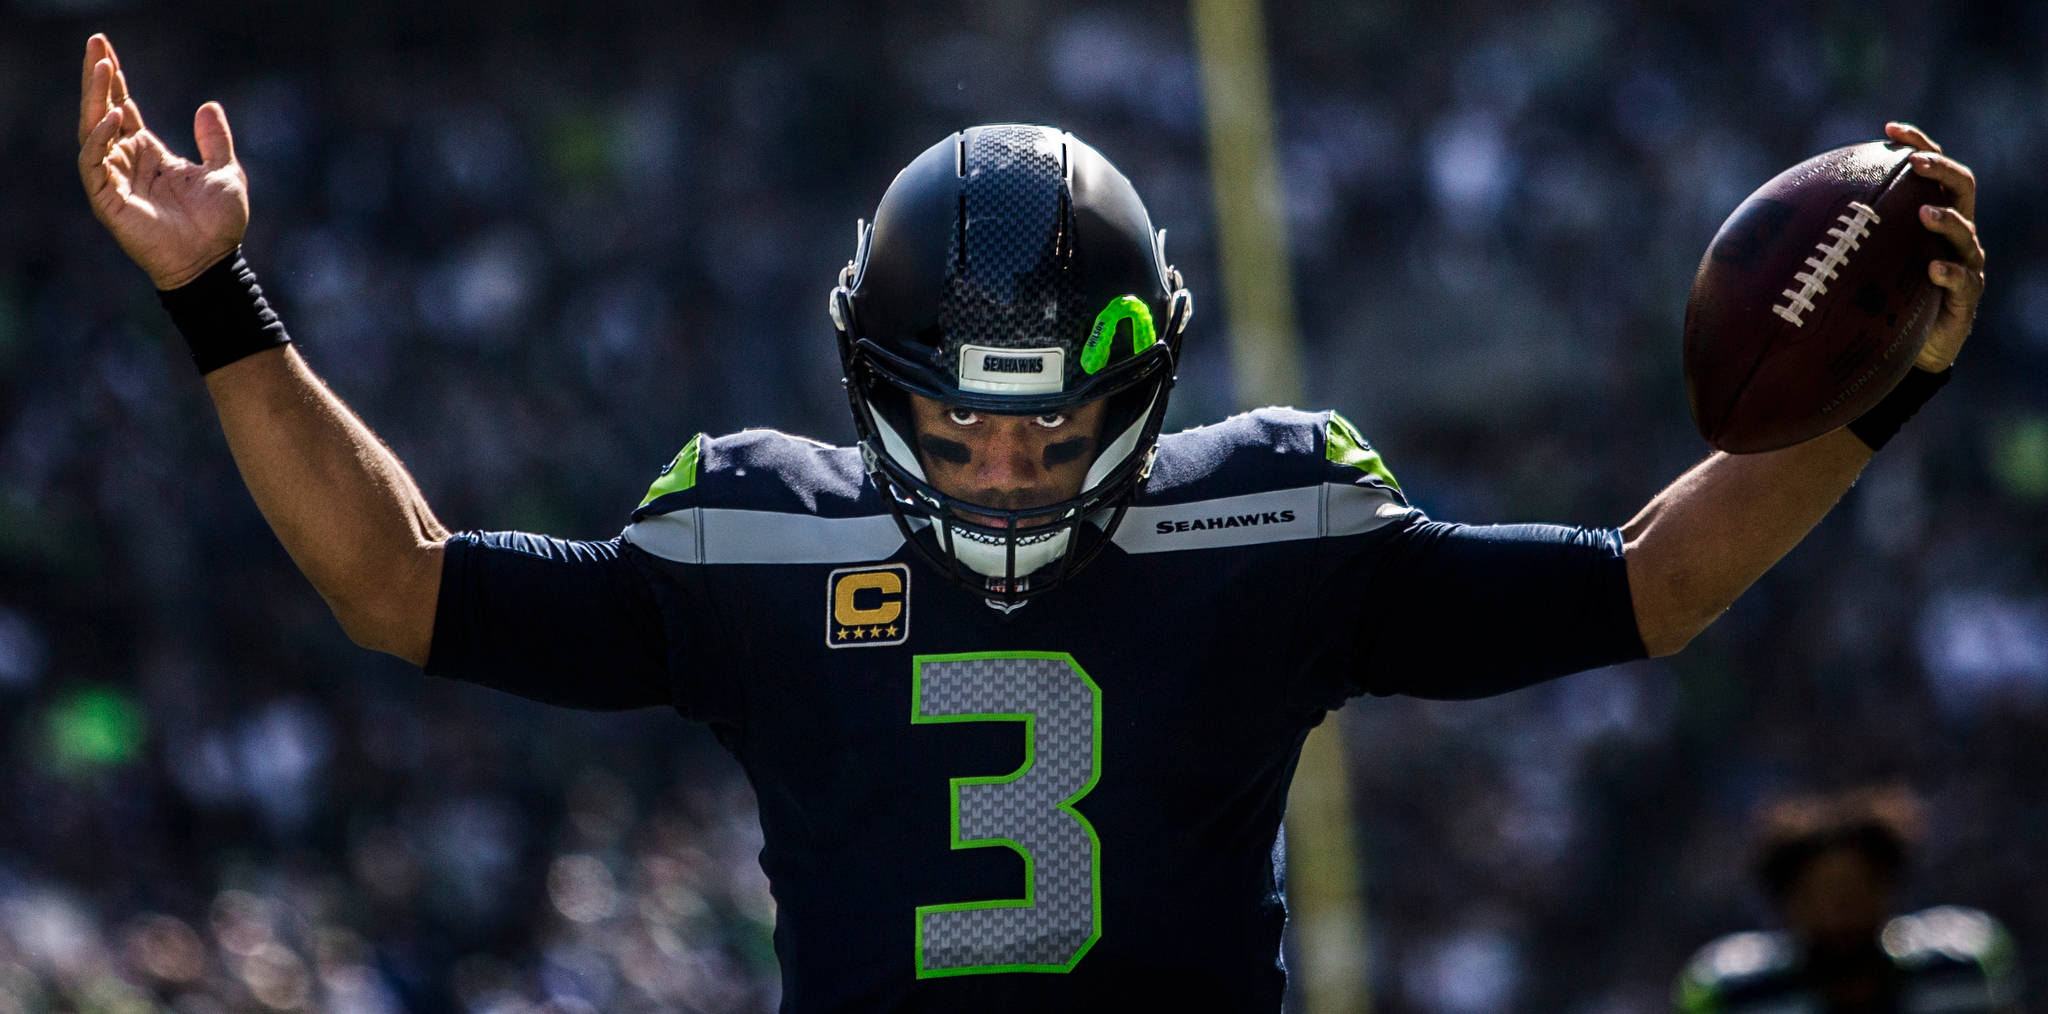 Seahawks' Russel Wilson raises his arms to pump the crowd up before the game against the Dallas Cowboys on Sept. 23, in Seattle. (Olivia Vanni / The Herald)